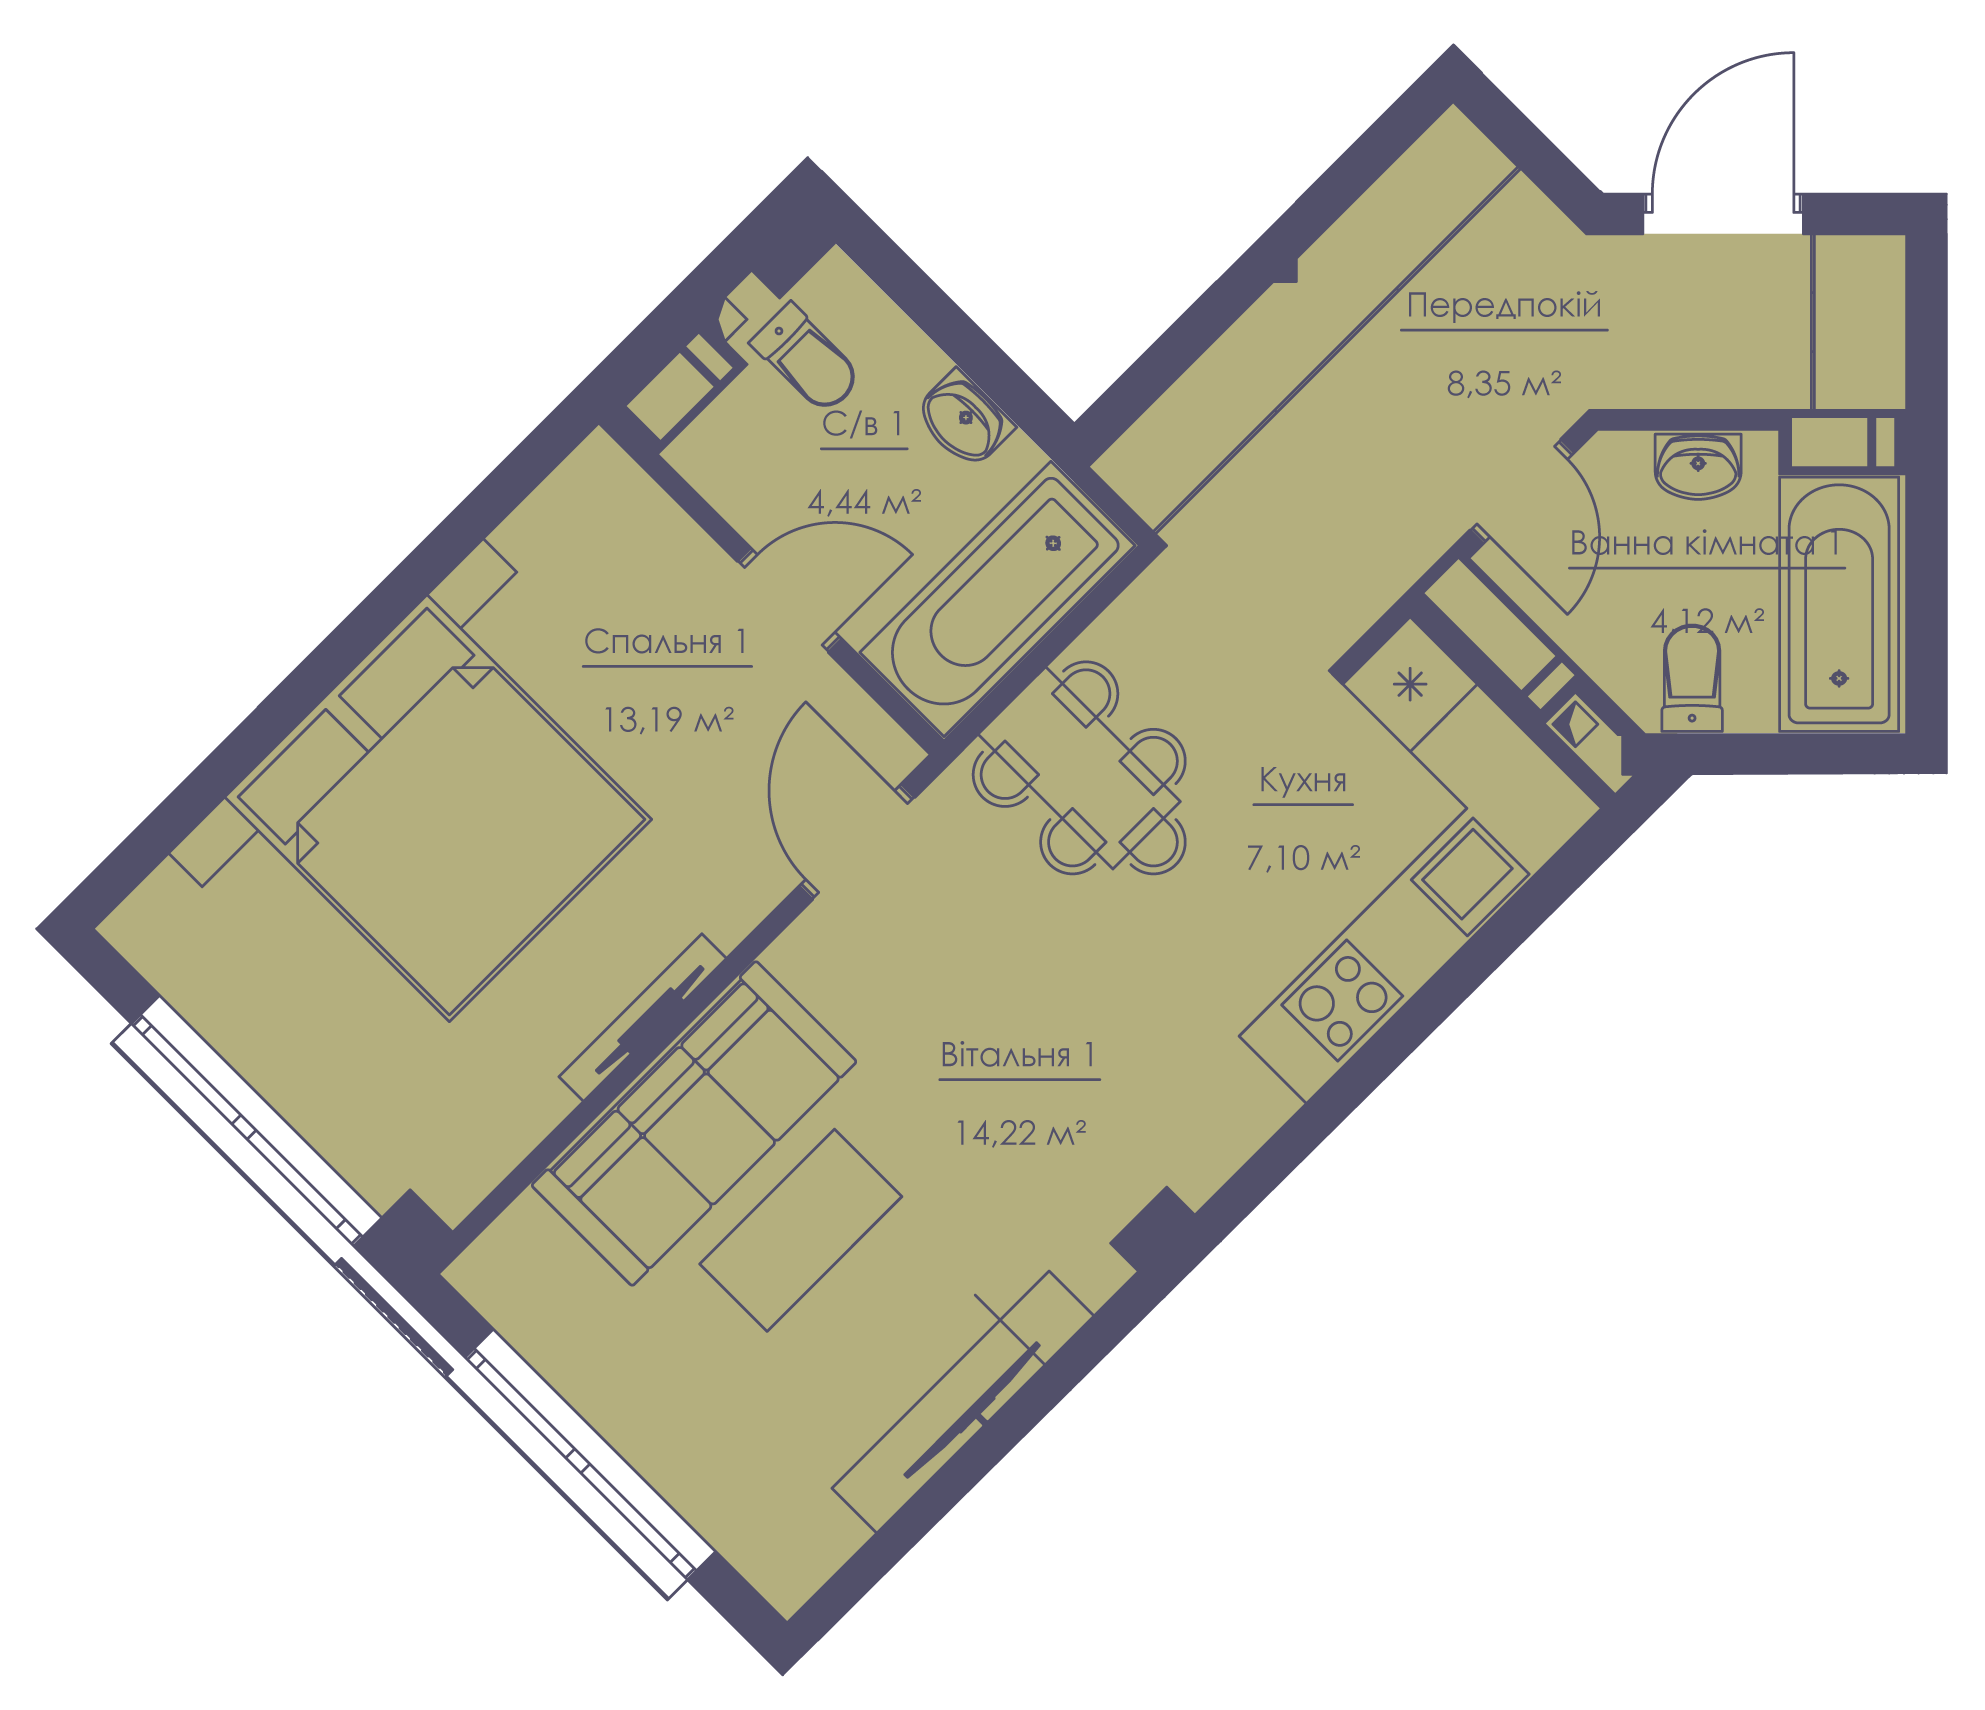 Apartment layout KV_85_2m_1_1_3-1